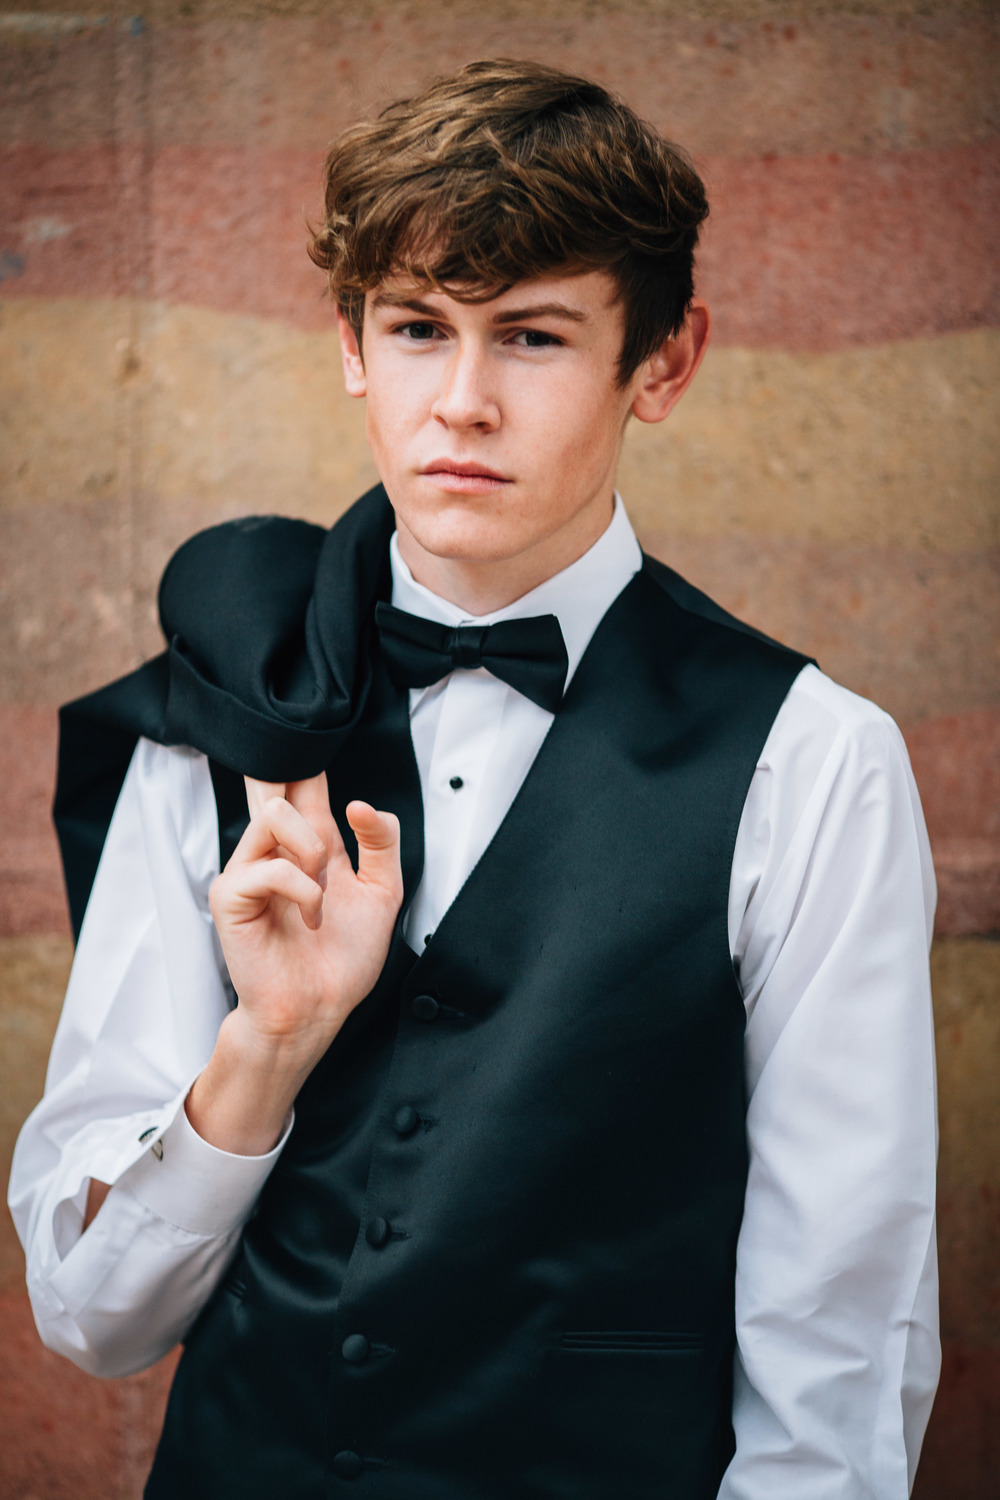 so-GQ-model-tuxedo-prom